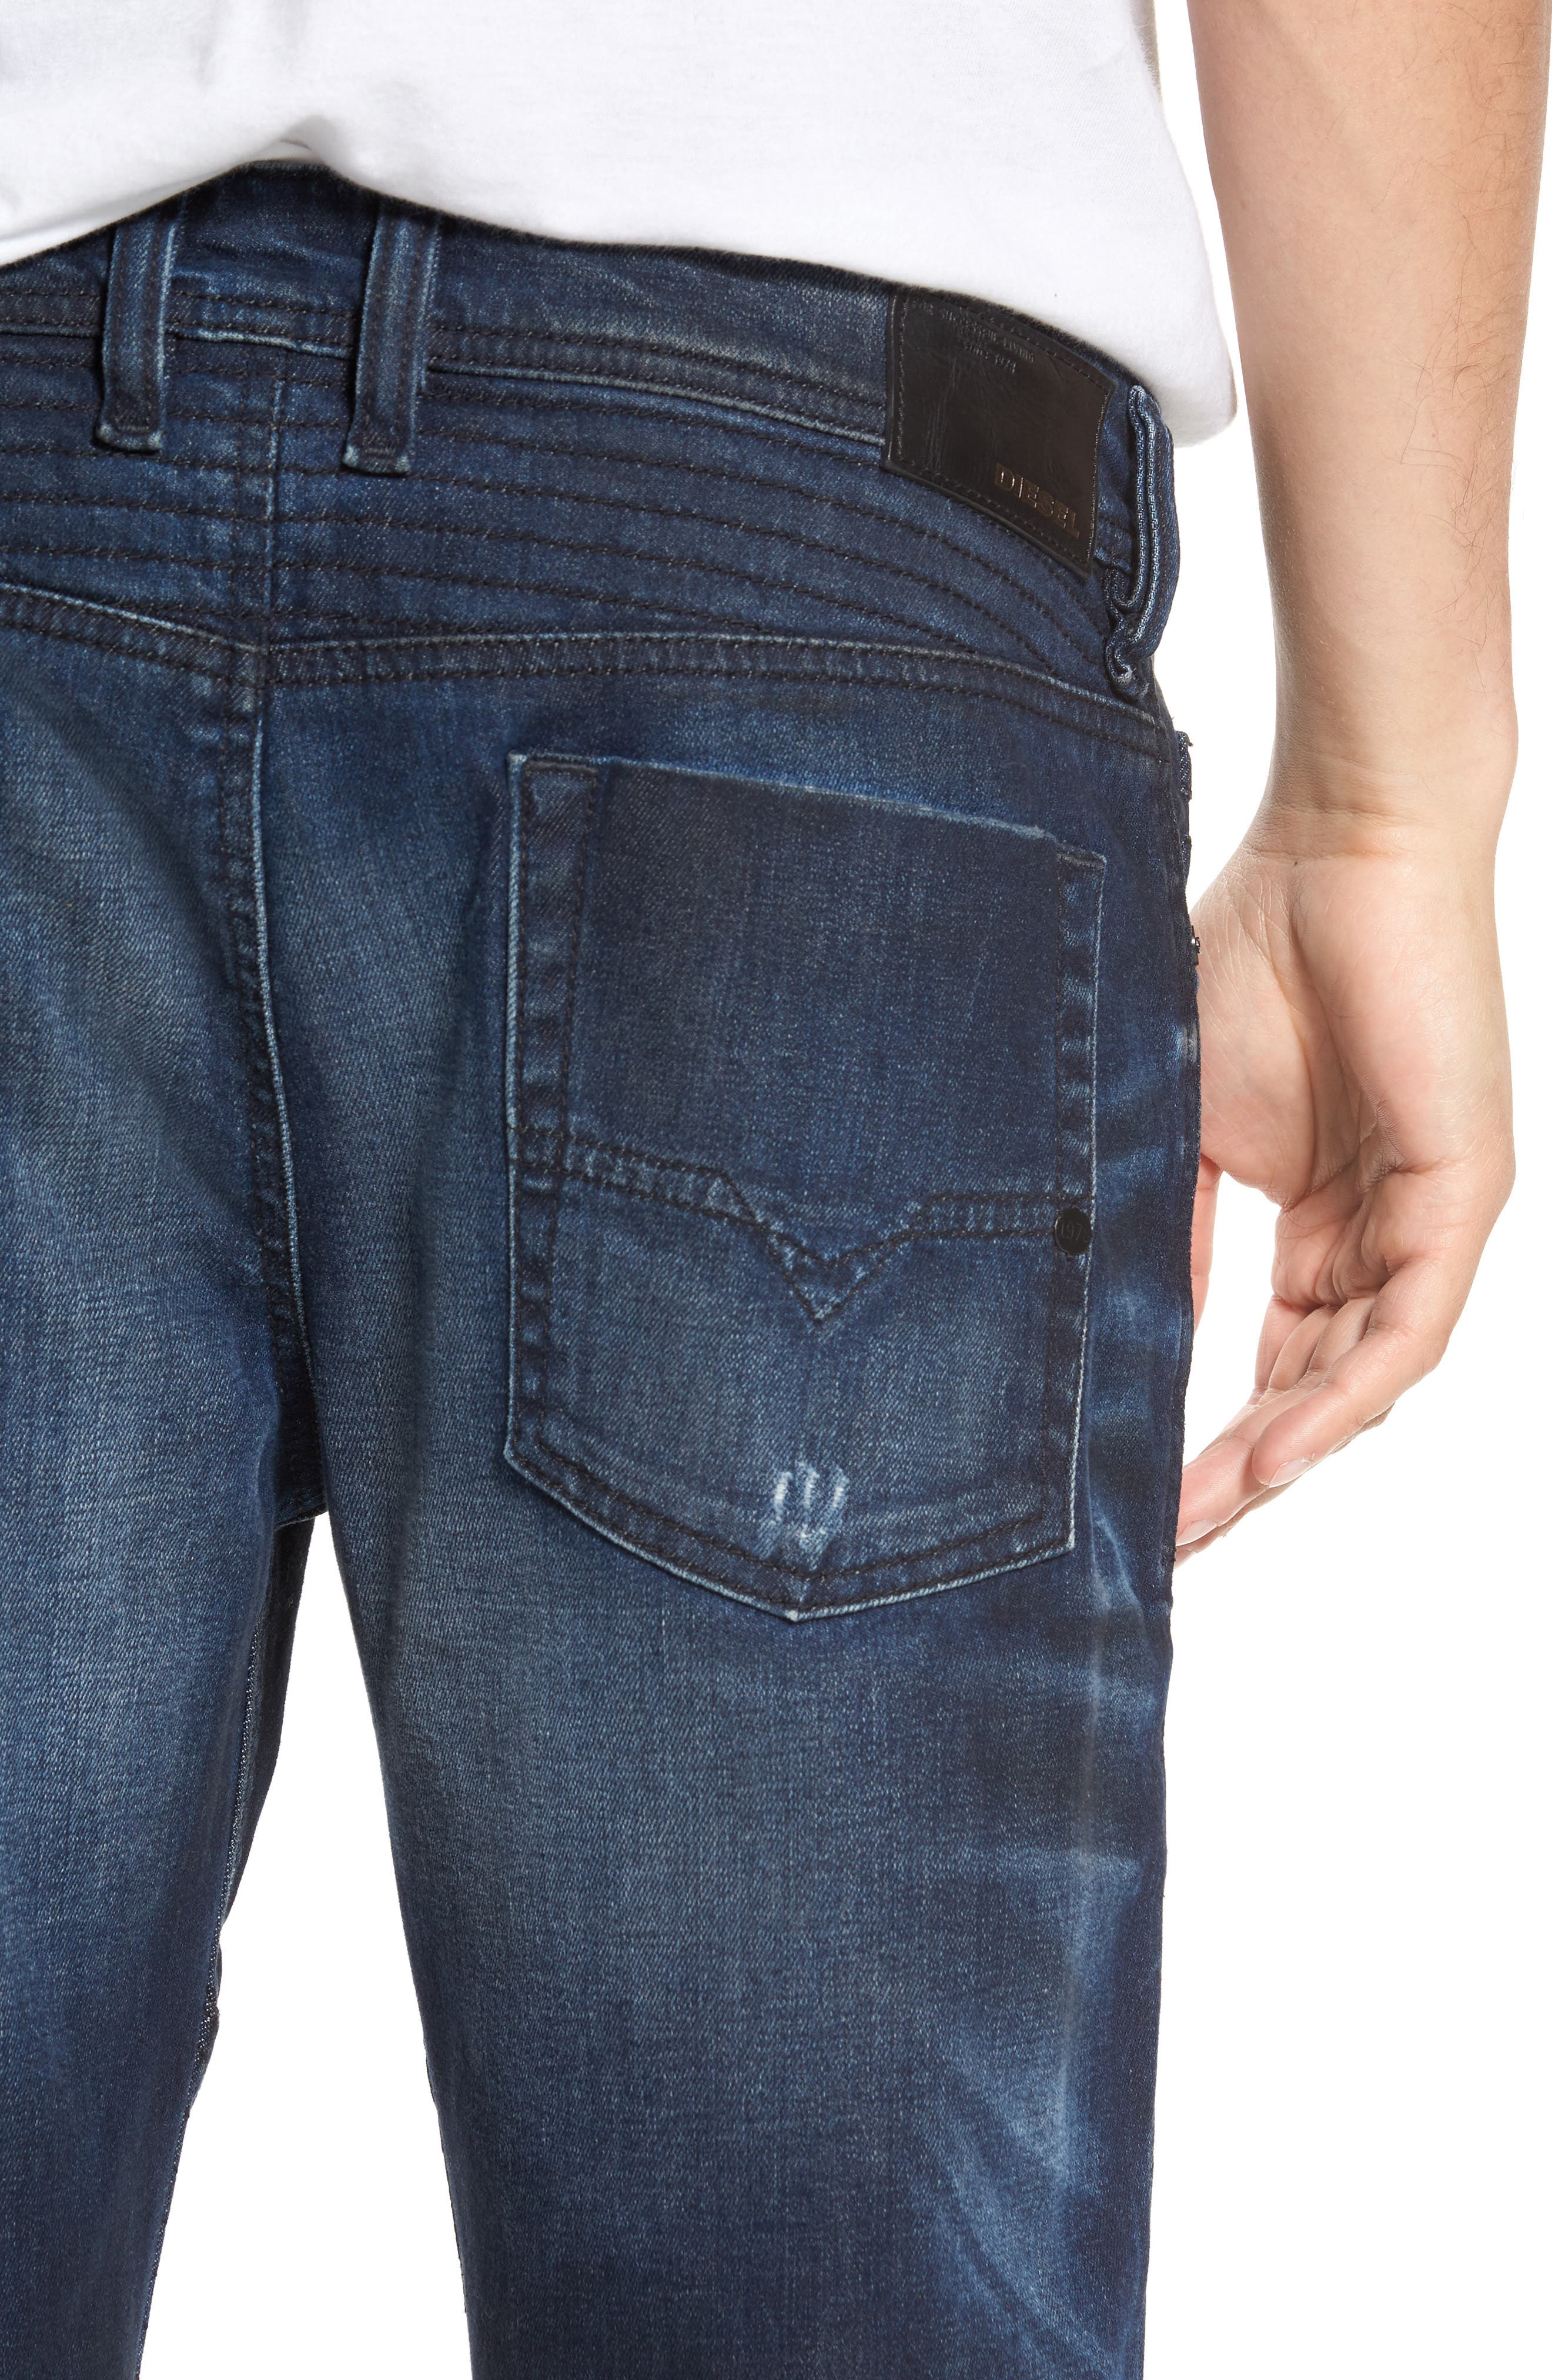 Fourk Skinny Fit Jeans,                             Alternate thumbnail 4, color,                             400